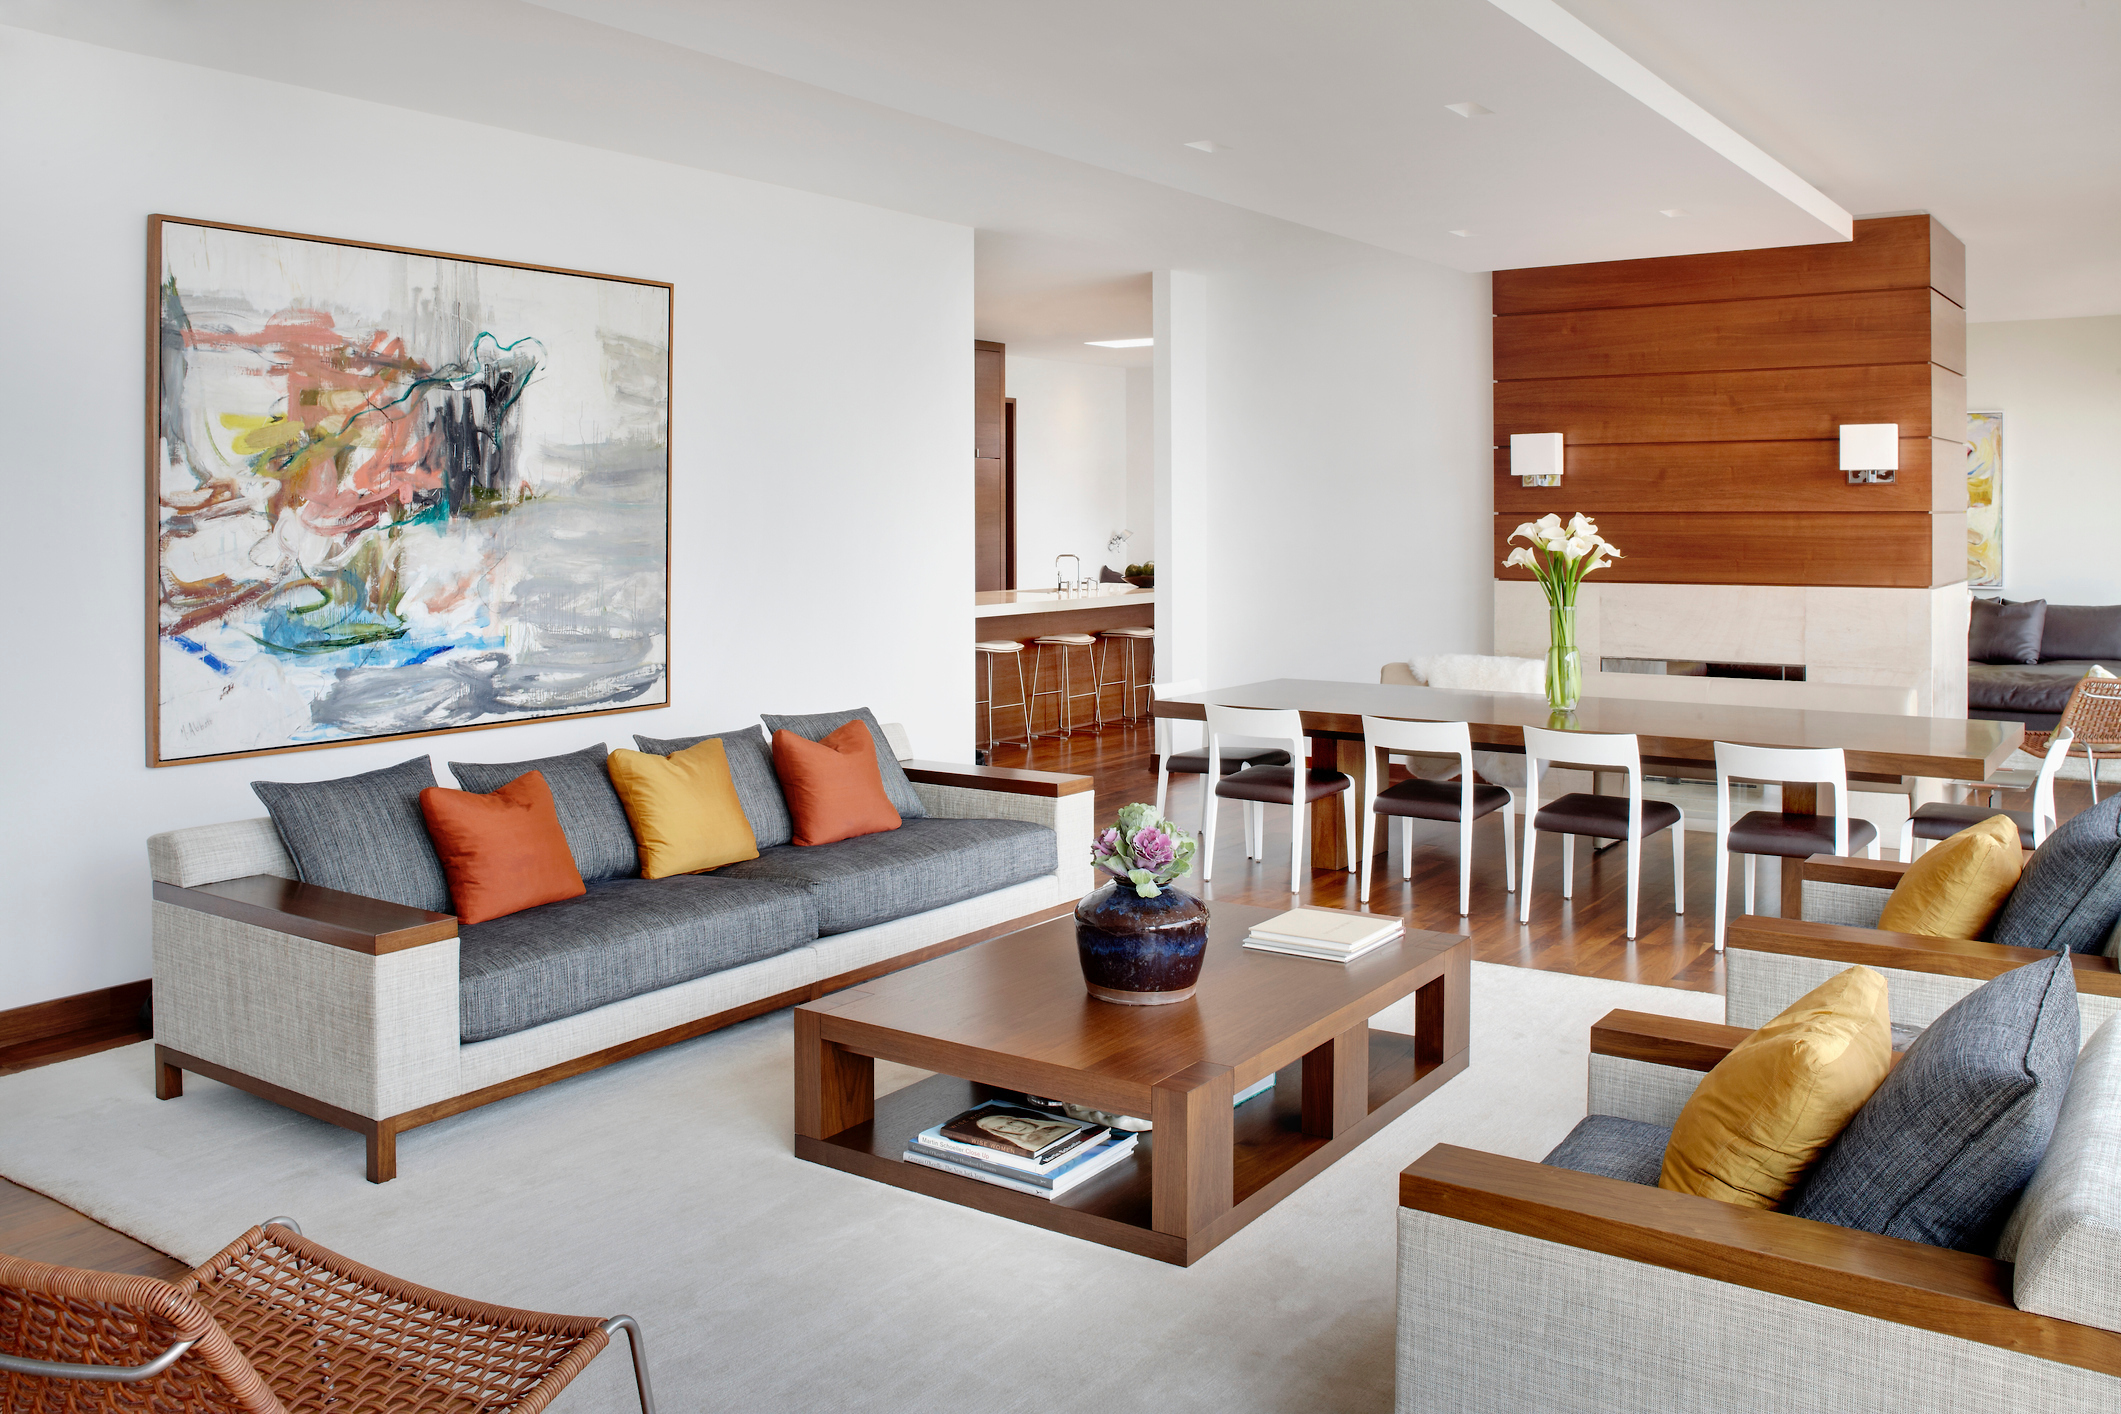 6 Steps to Designing the Interior of your House